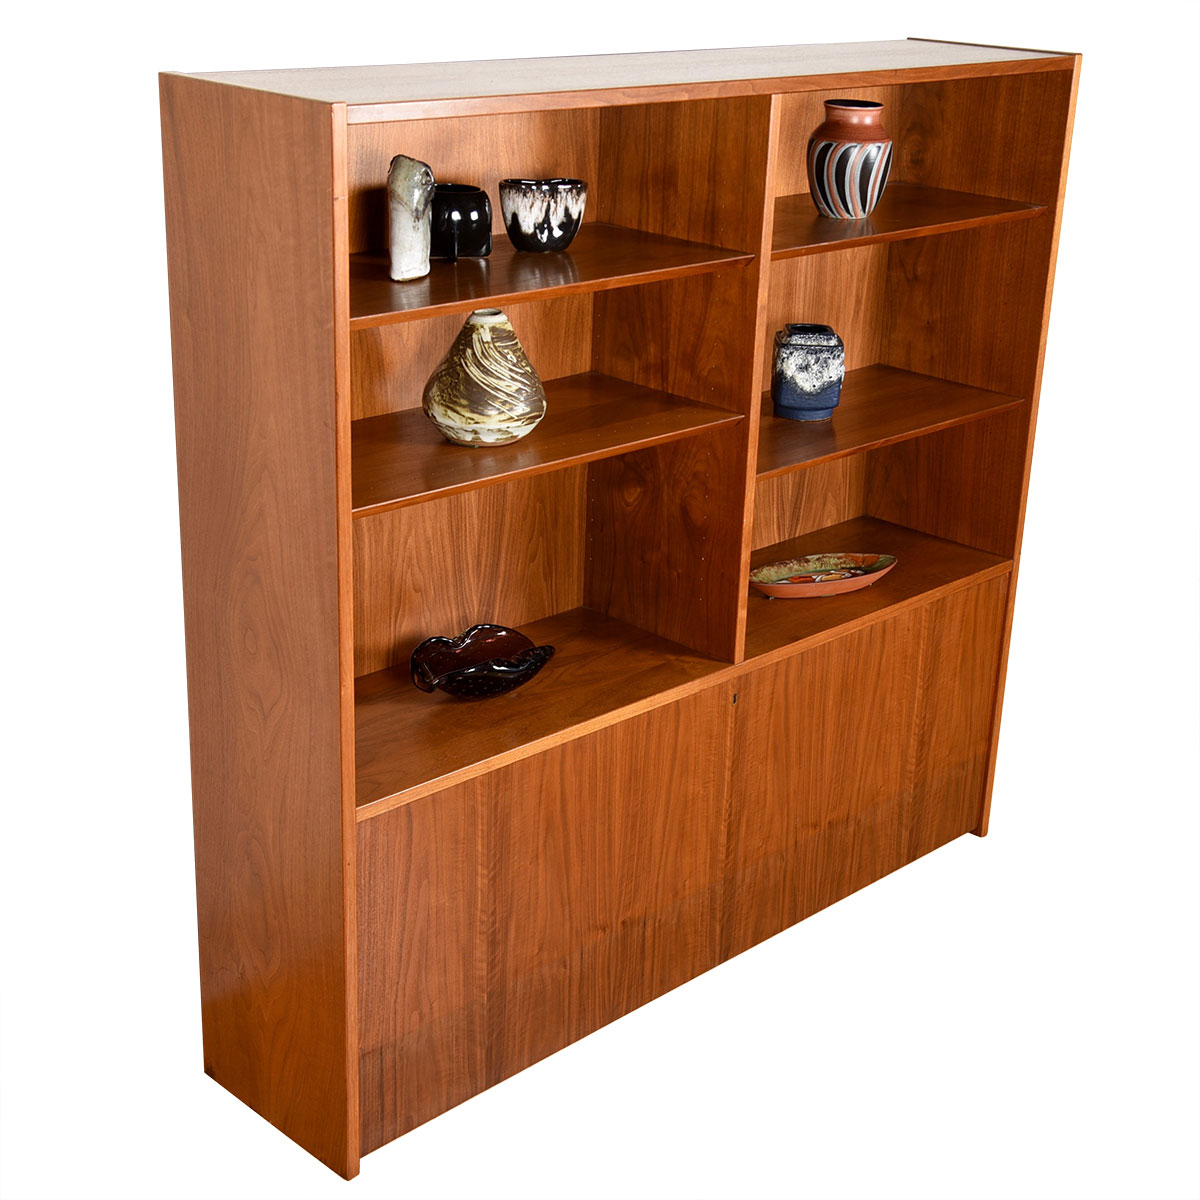 Danish Walnut Drop-Down Adjustable Bookcase / Display Cabinet / Secretary Top